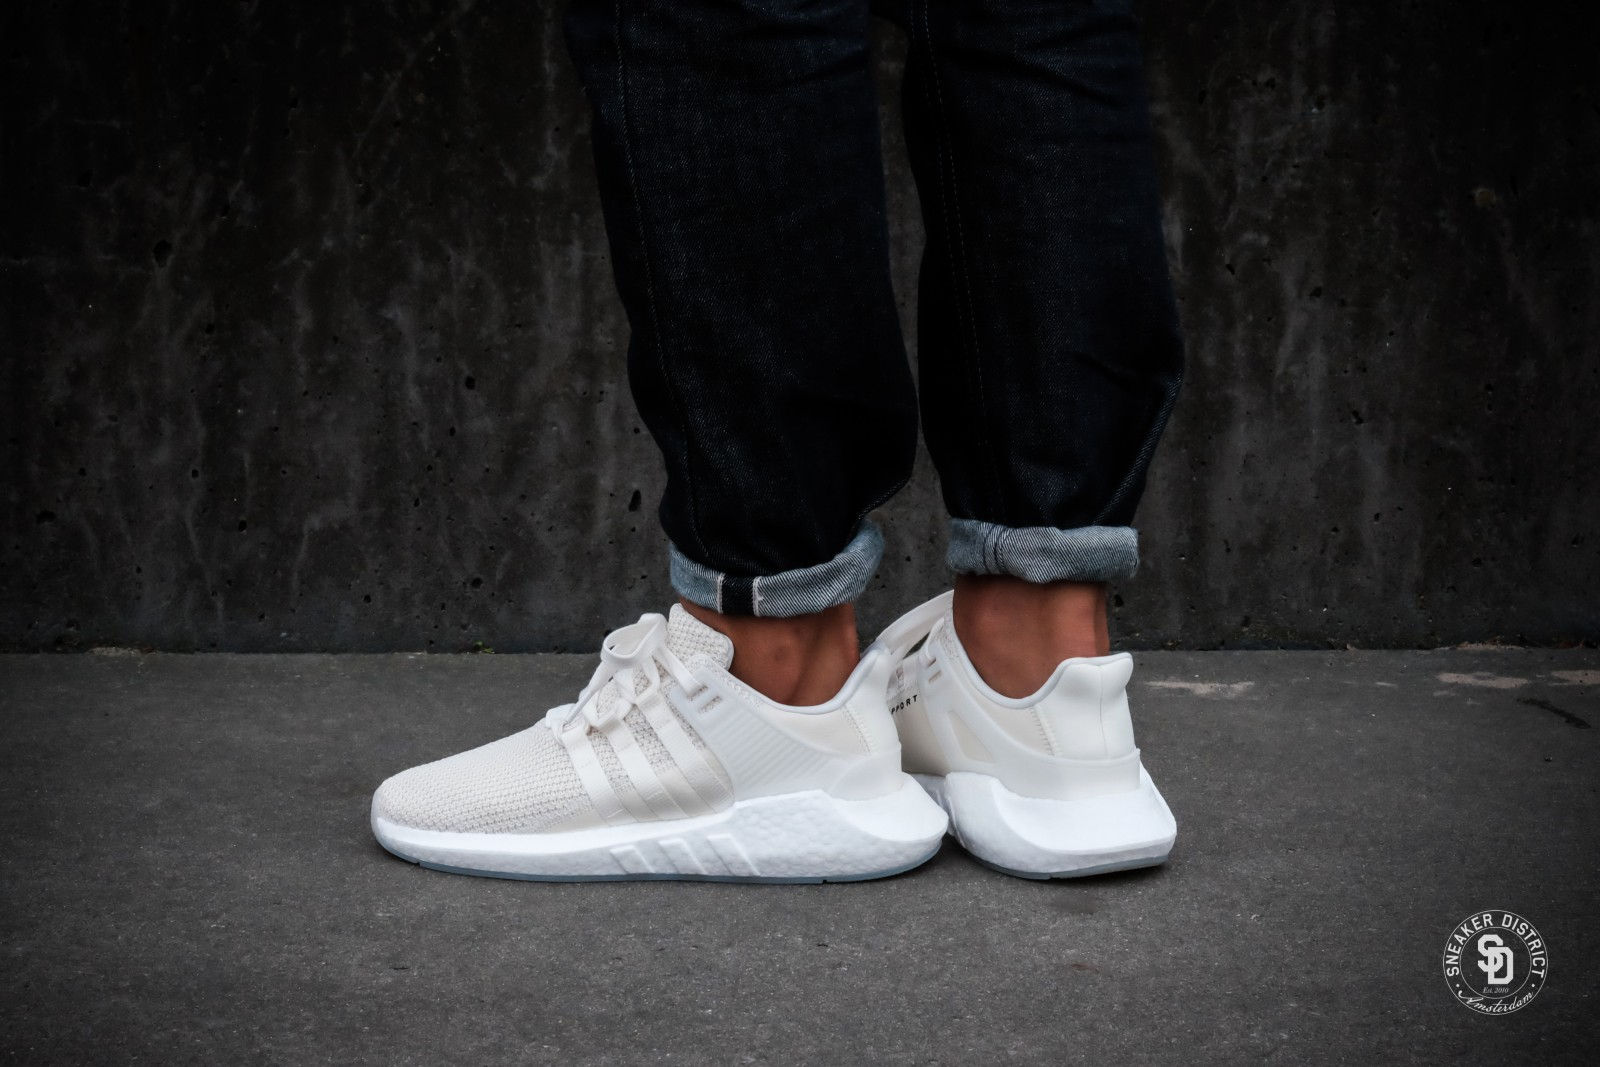 reputable site de967 a7097 Adidas EQT Support 9317 Off WhiteFootwear White BZ0586